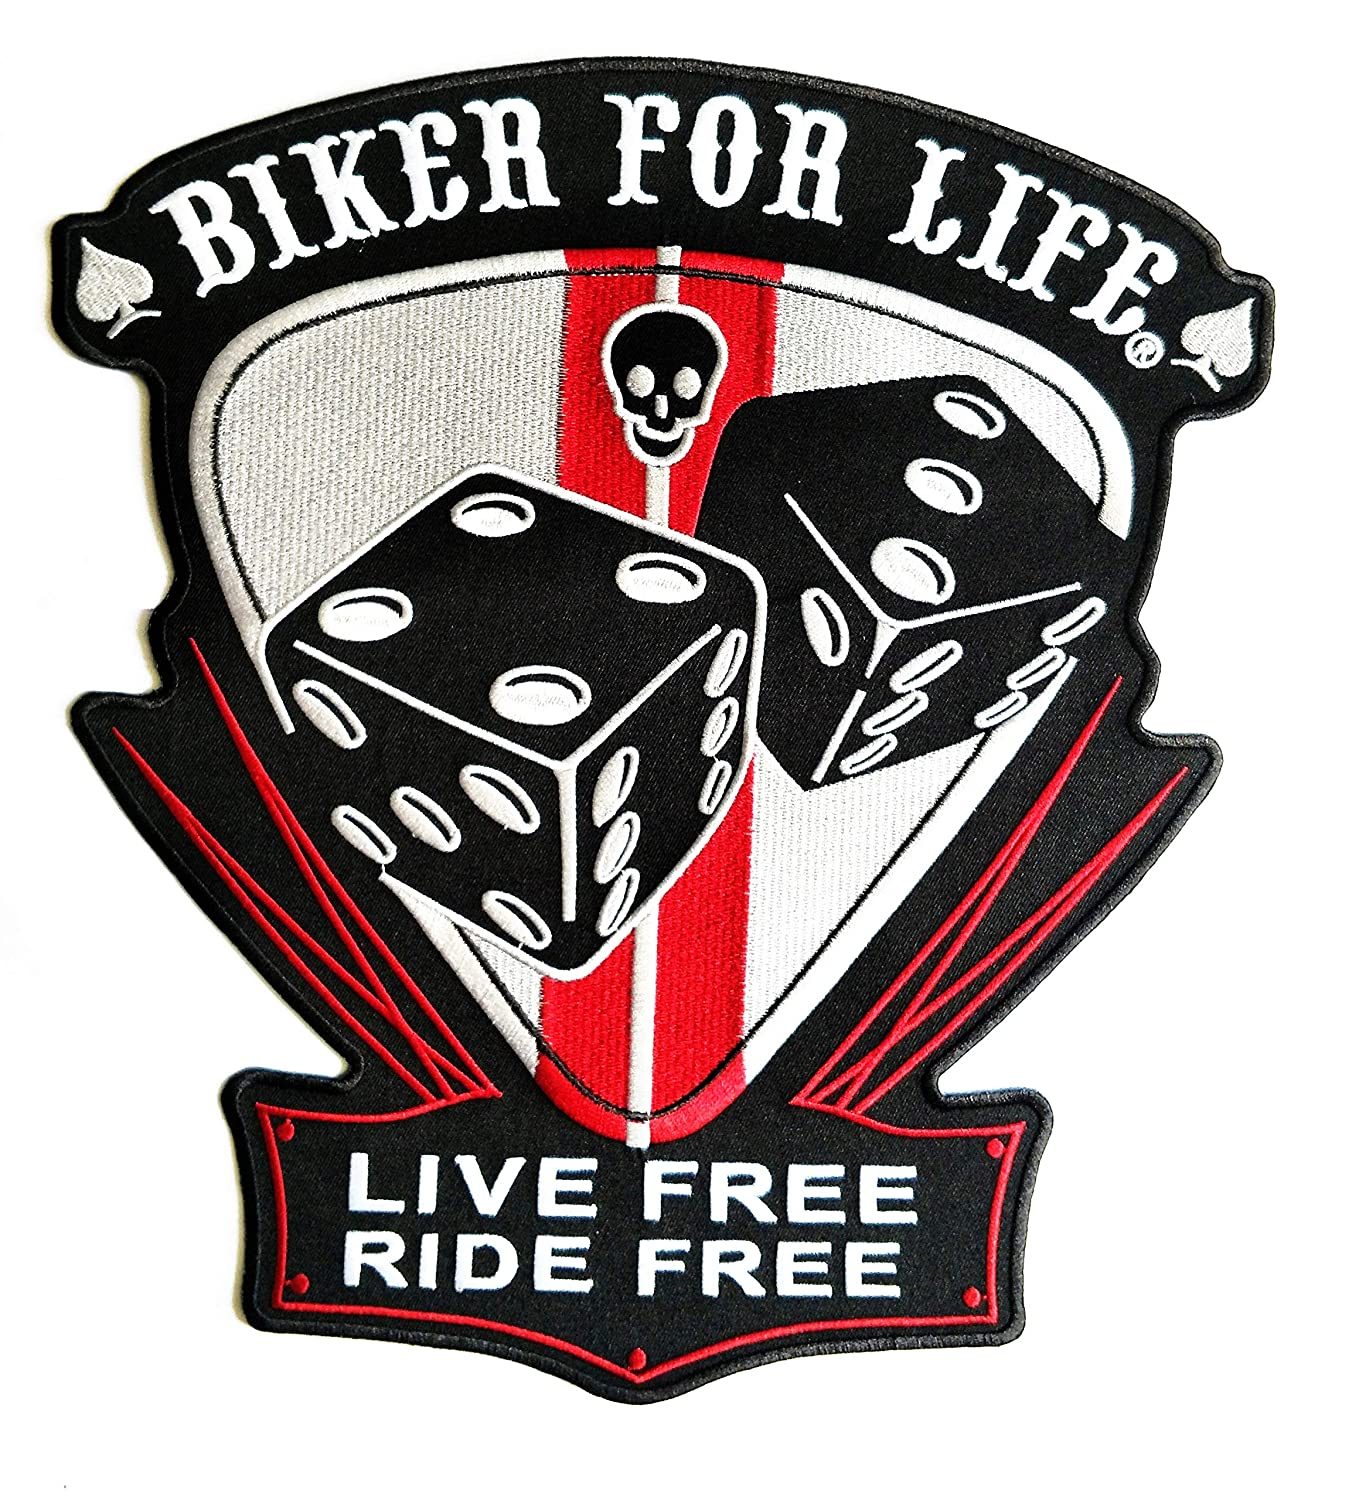 11.7'' X 11'' Big Jumbo for Life Live Free Ride Free Patch Logo Jacket t-Shirt Jeans Polo Patch Iron on Embroidered Logo Motorcycle Rider Biker Patch by Tour les jours Shop